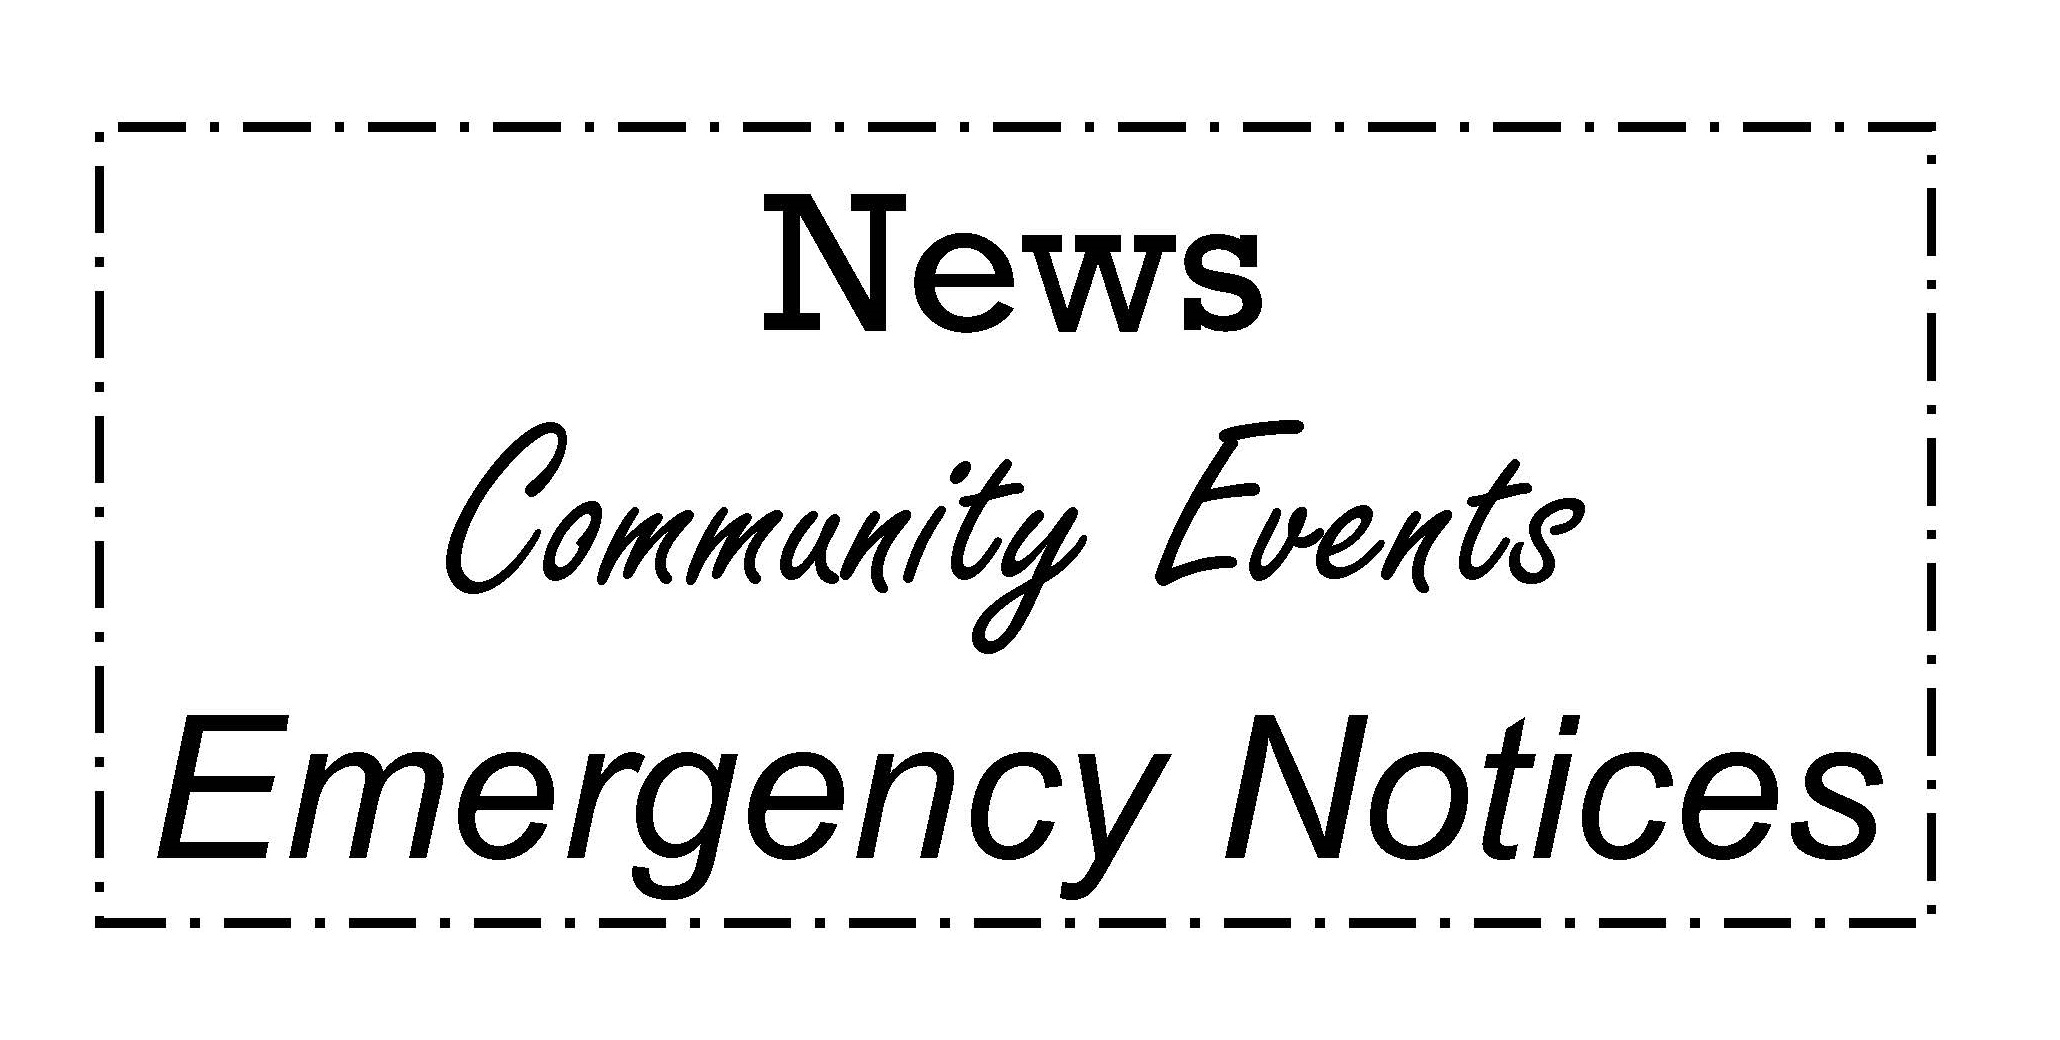 News, Community Events, Emergency Notices